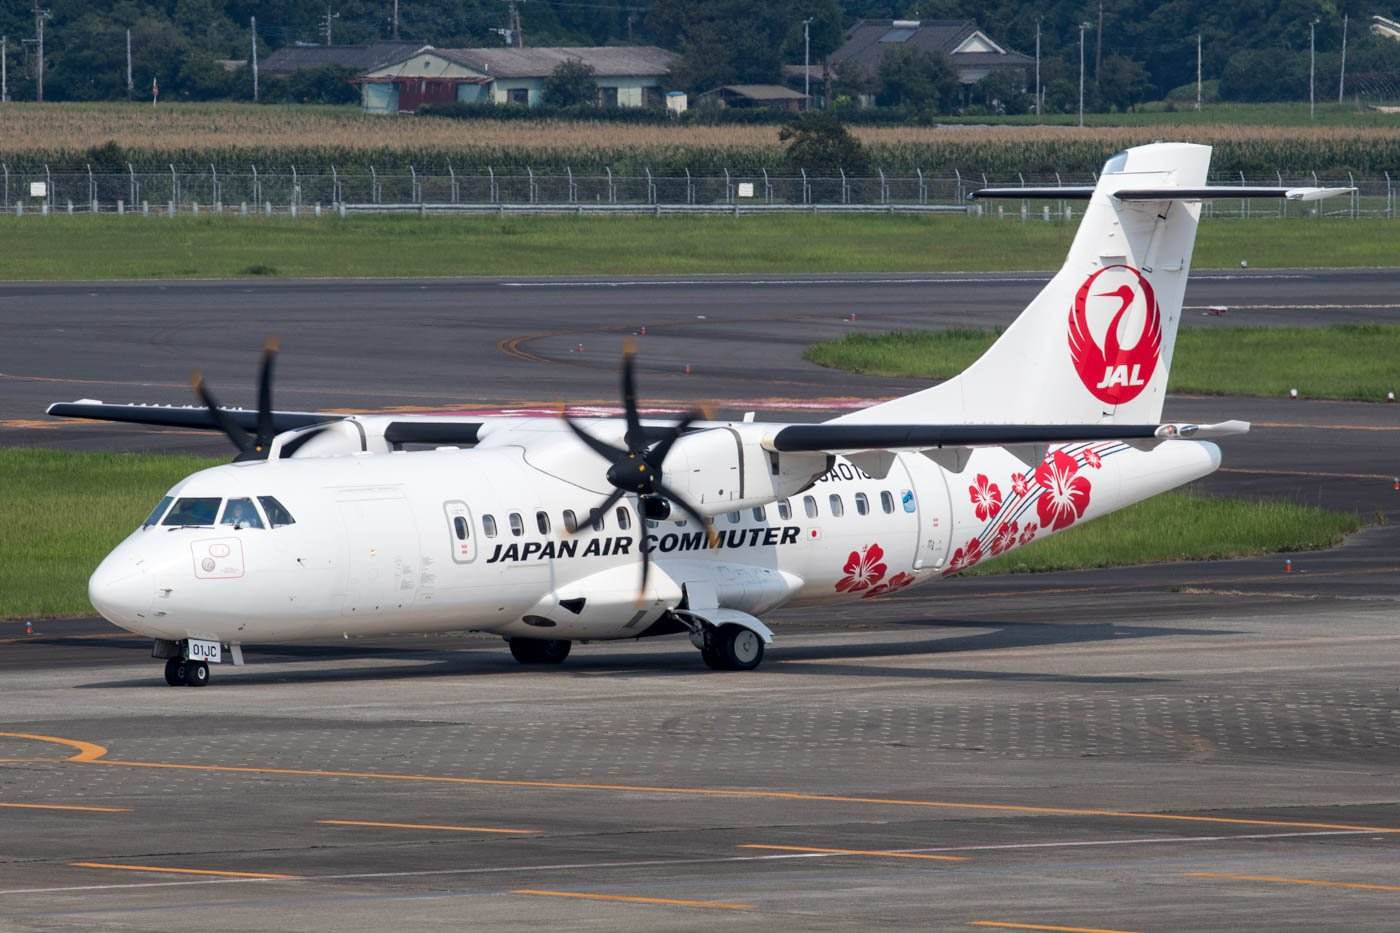 Japan Air Commuter ATR at Kagoshima Airport